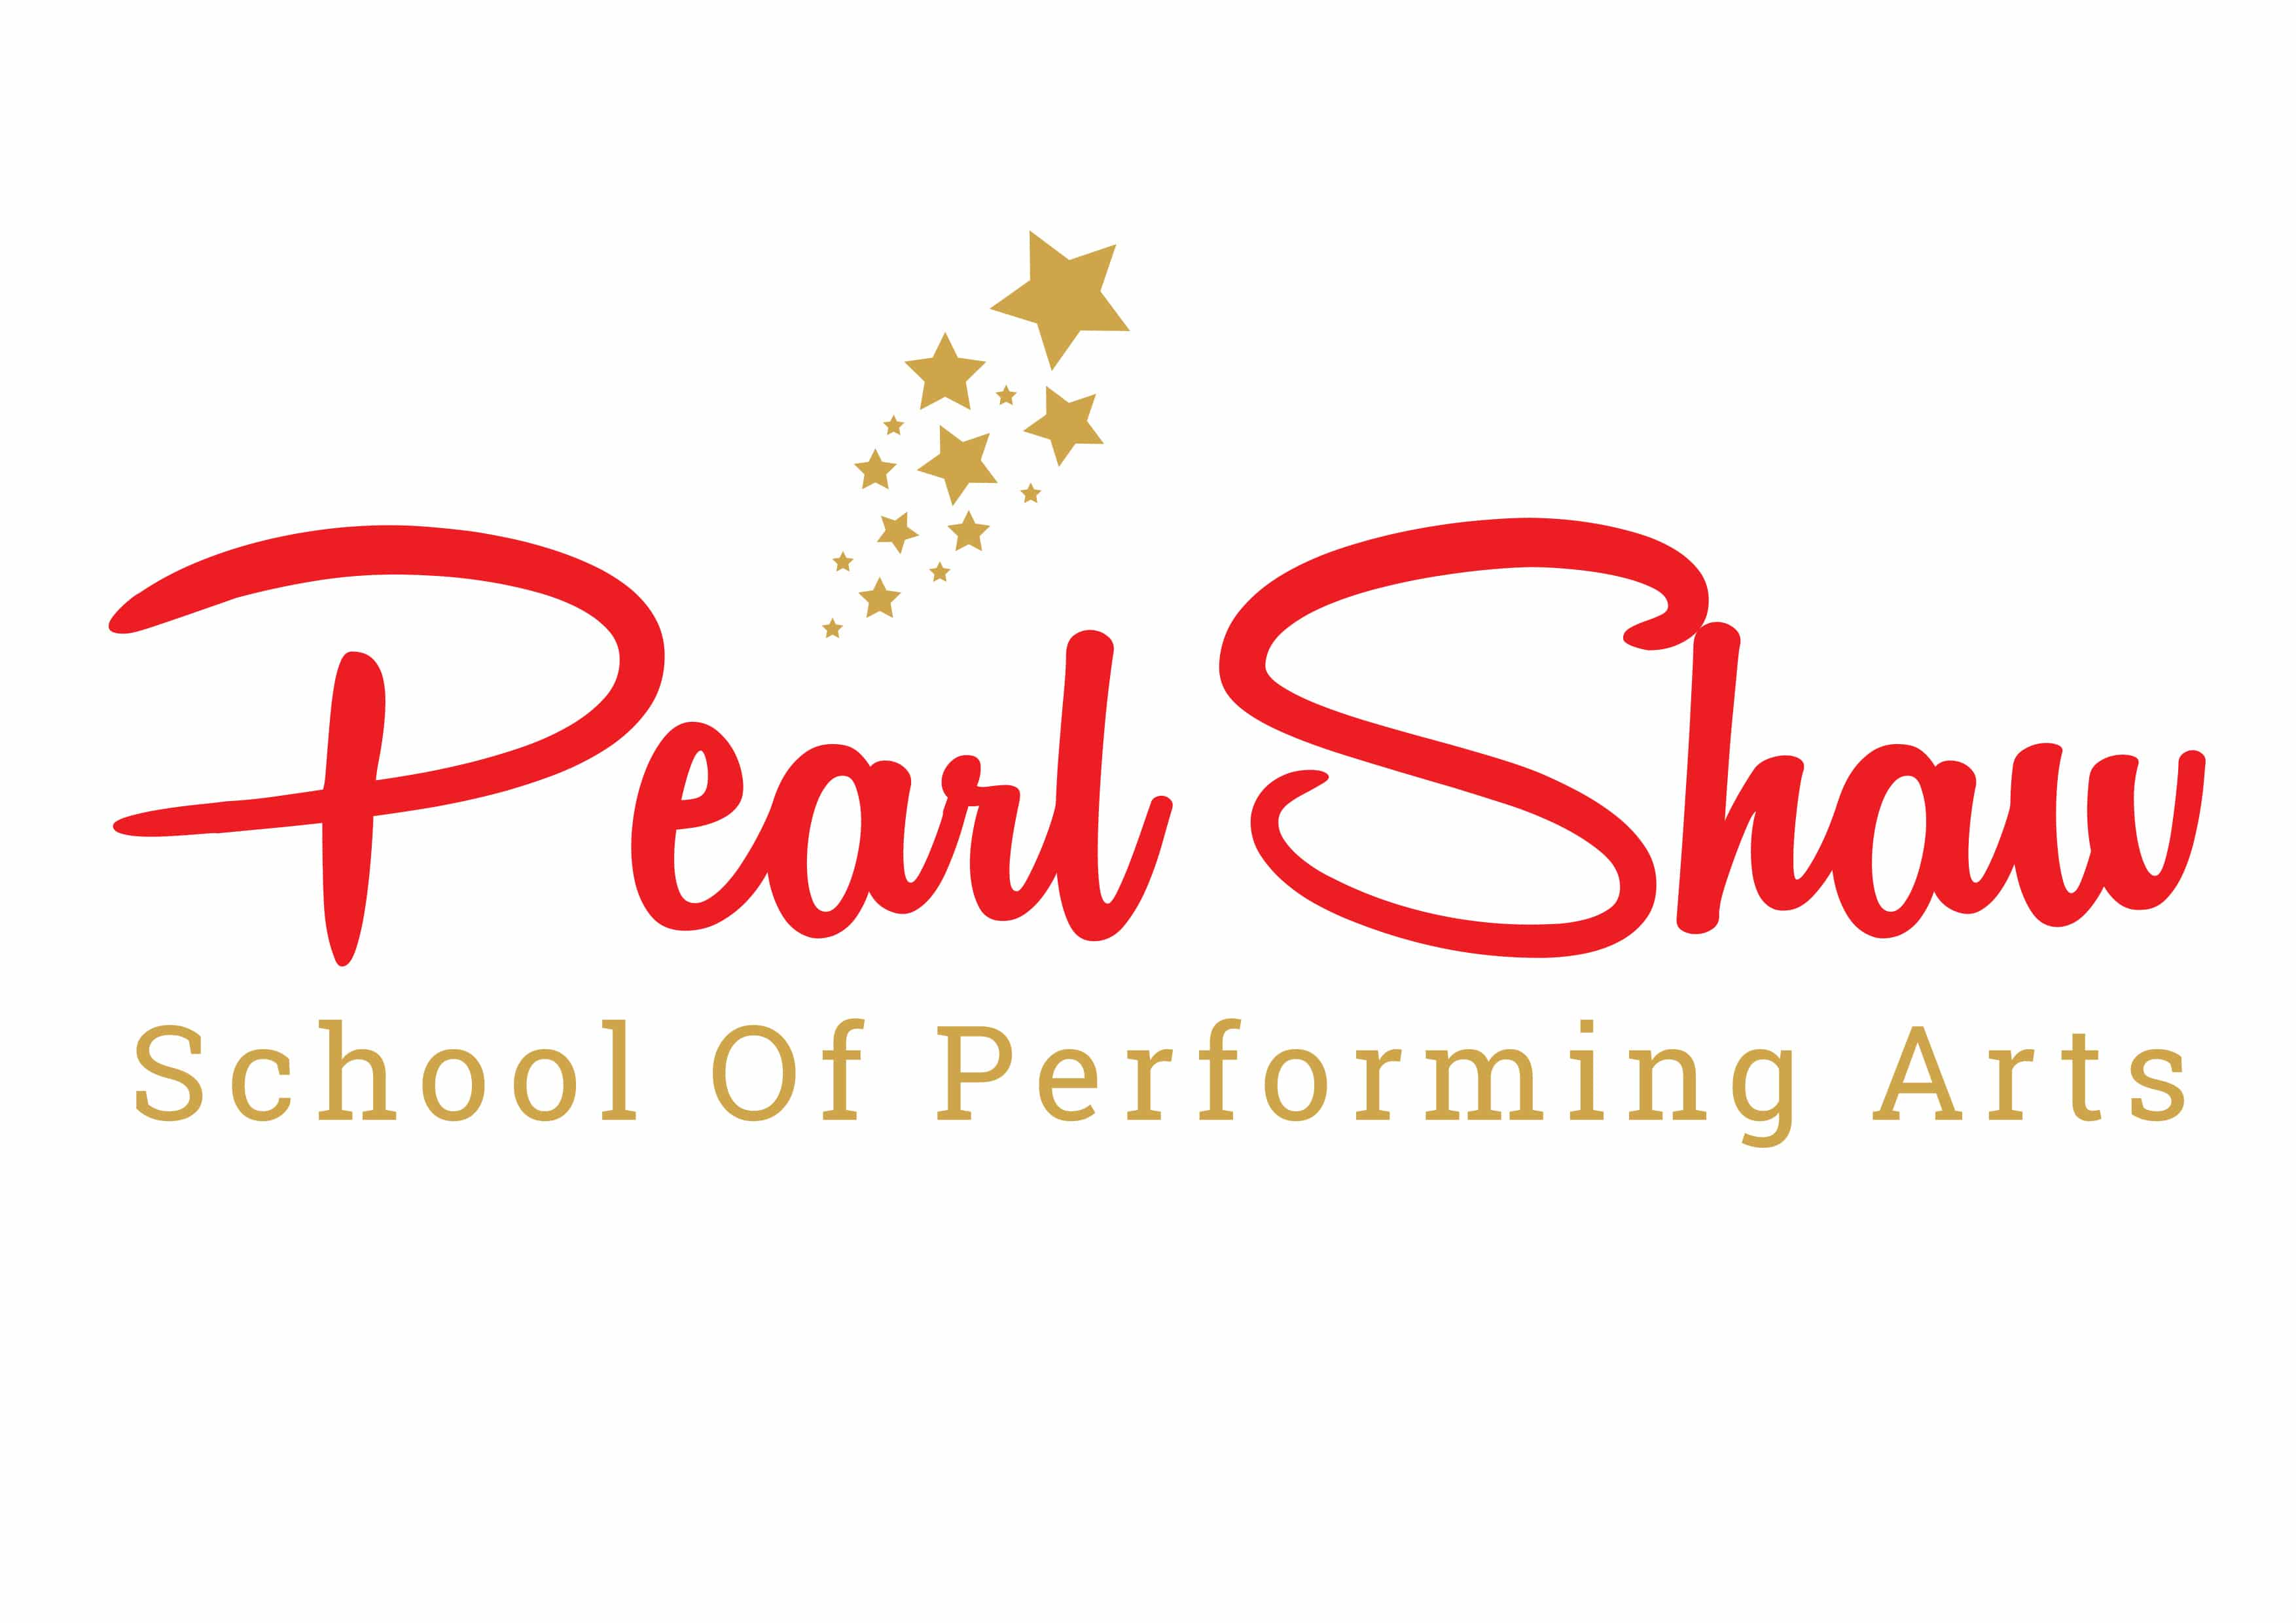 Pear Shaw School Of Performing arts logo against white